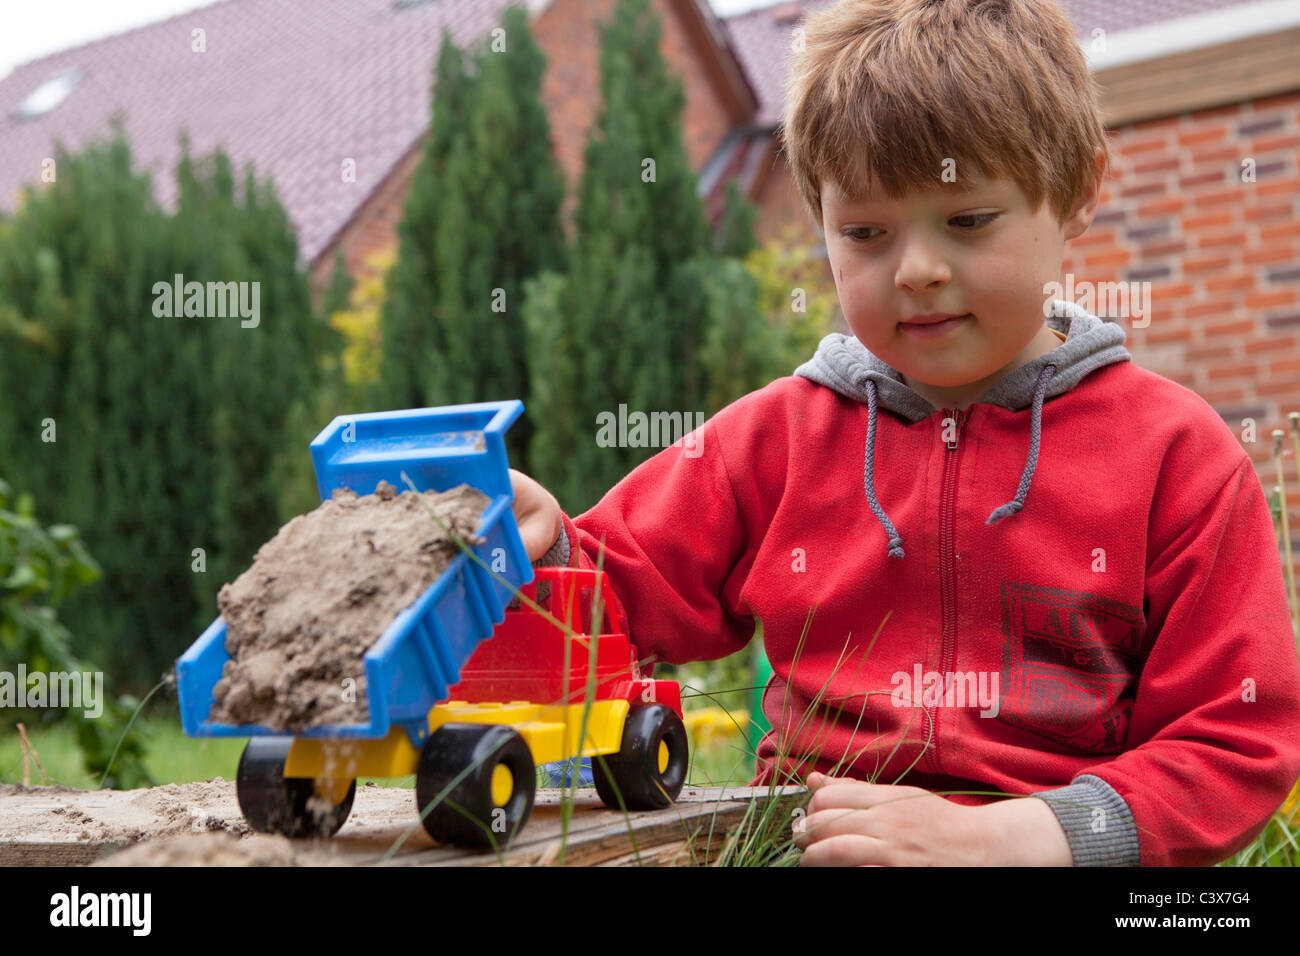 little boy playing with a toy truck in a sandbox - Stock Image